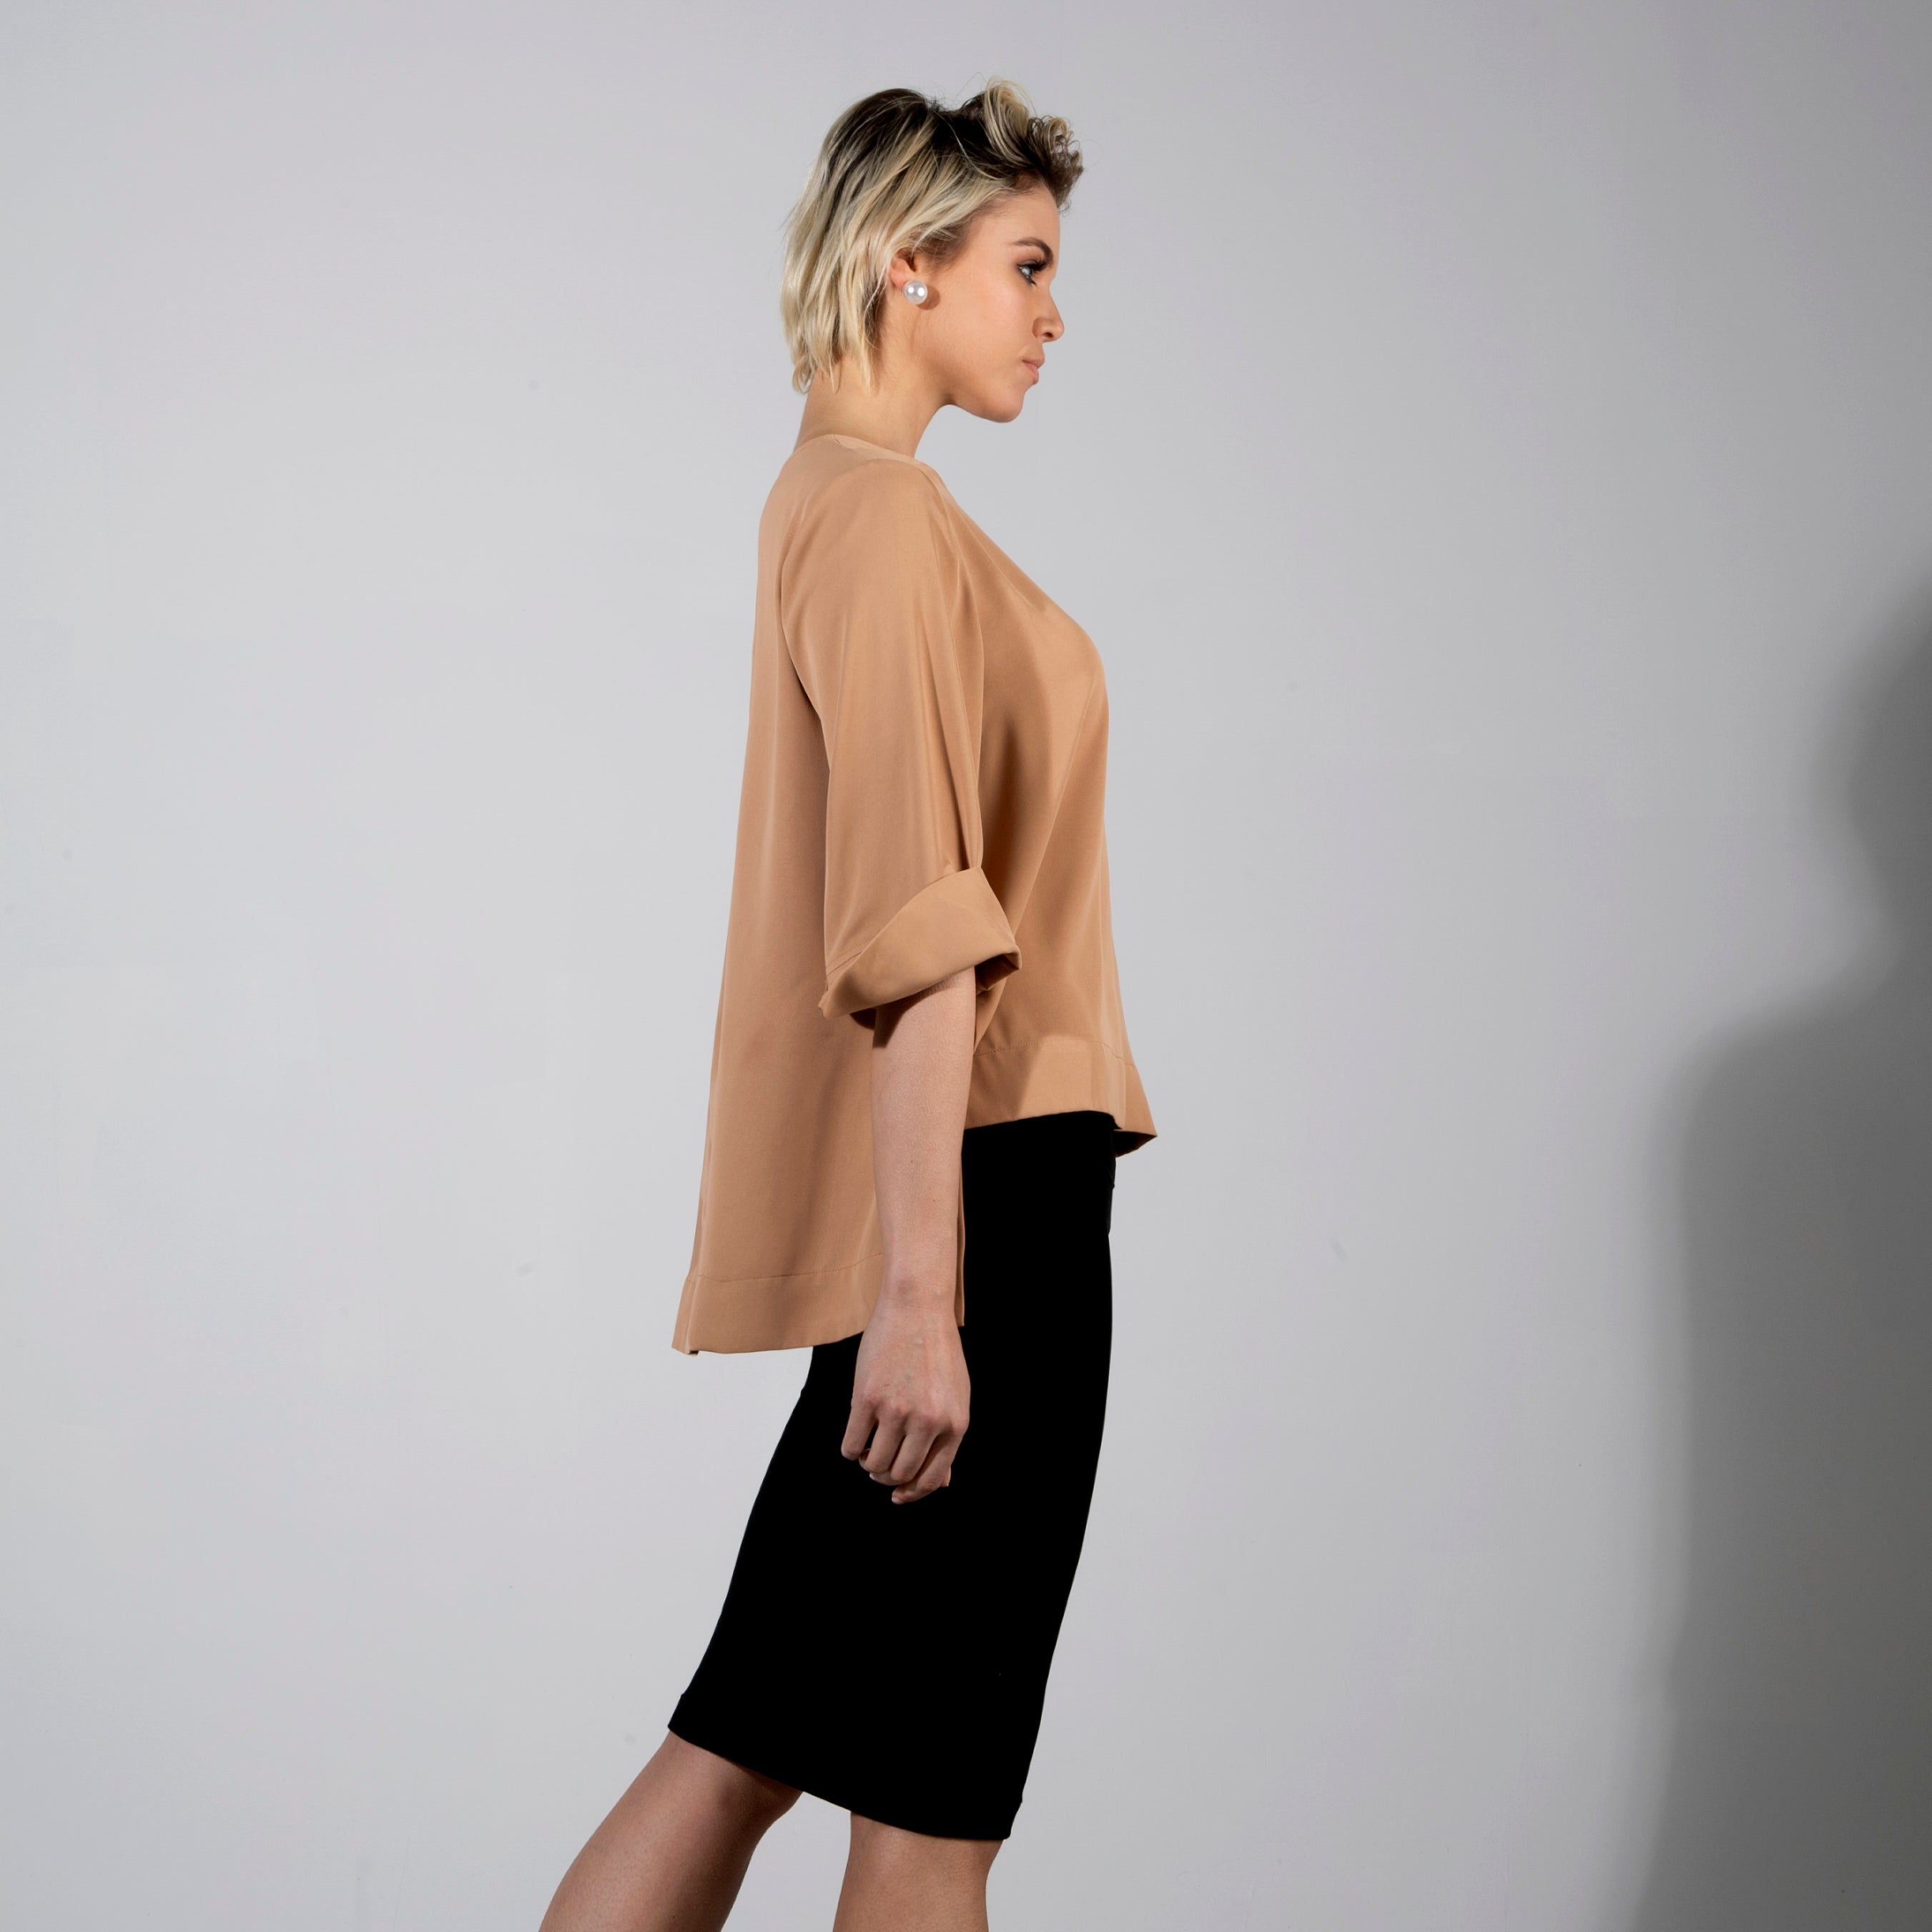 High-Low Shirt - available in 2 colors